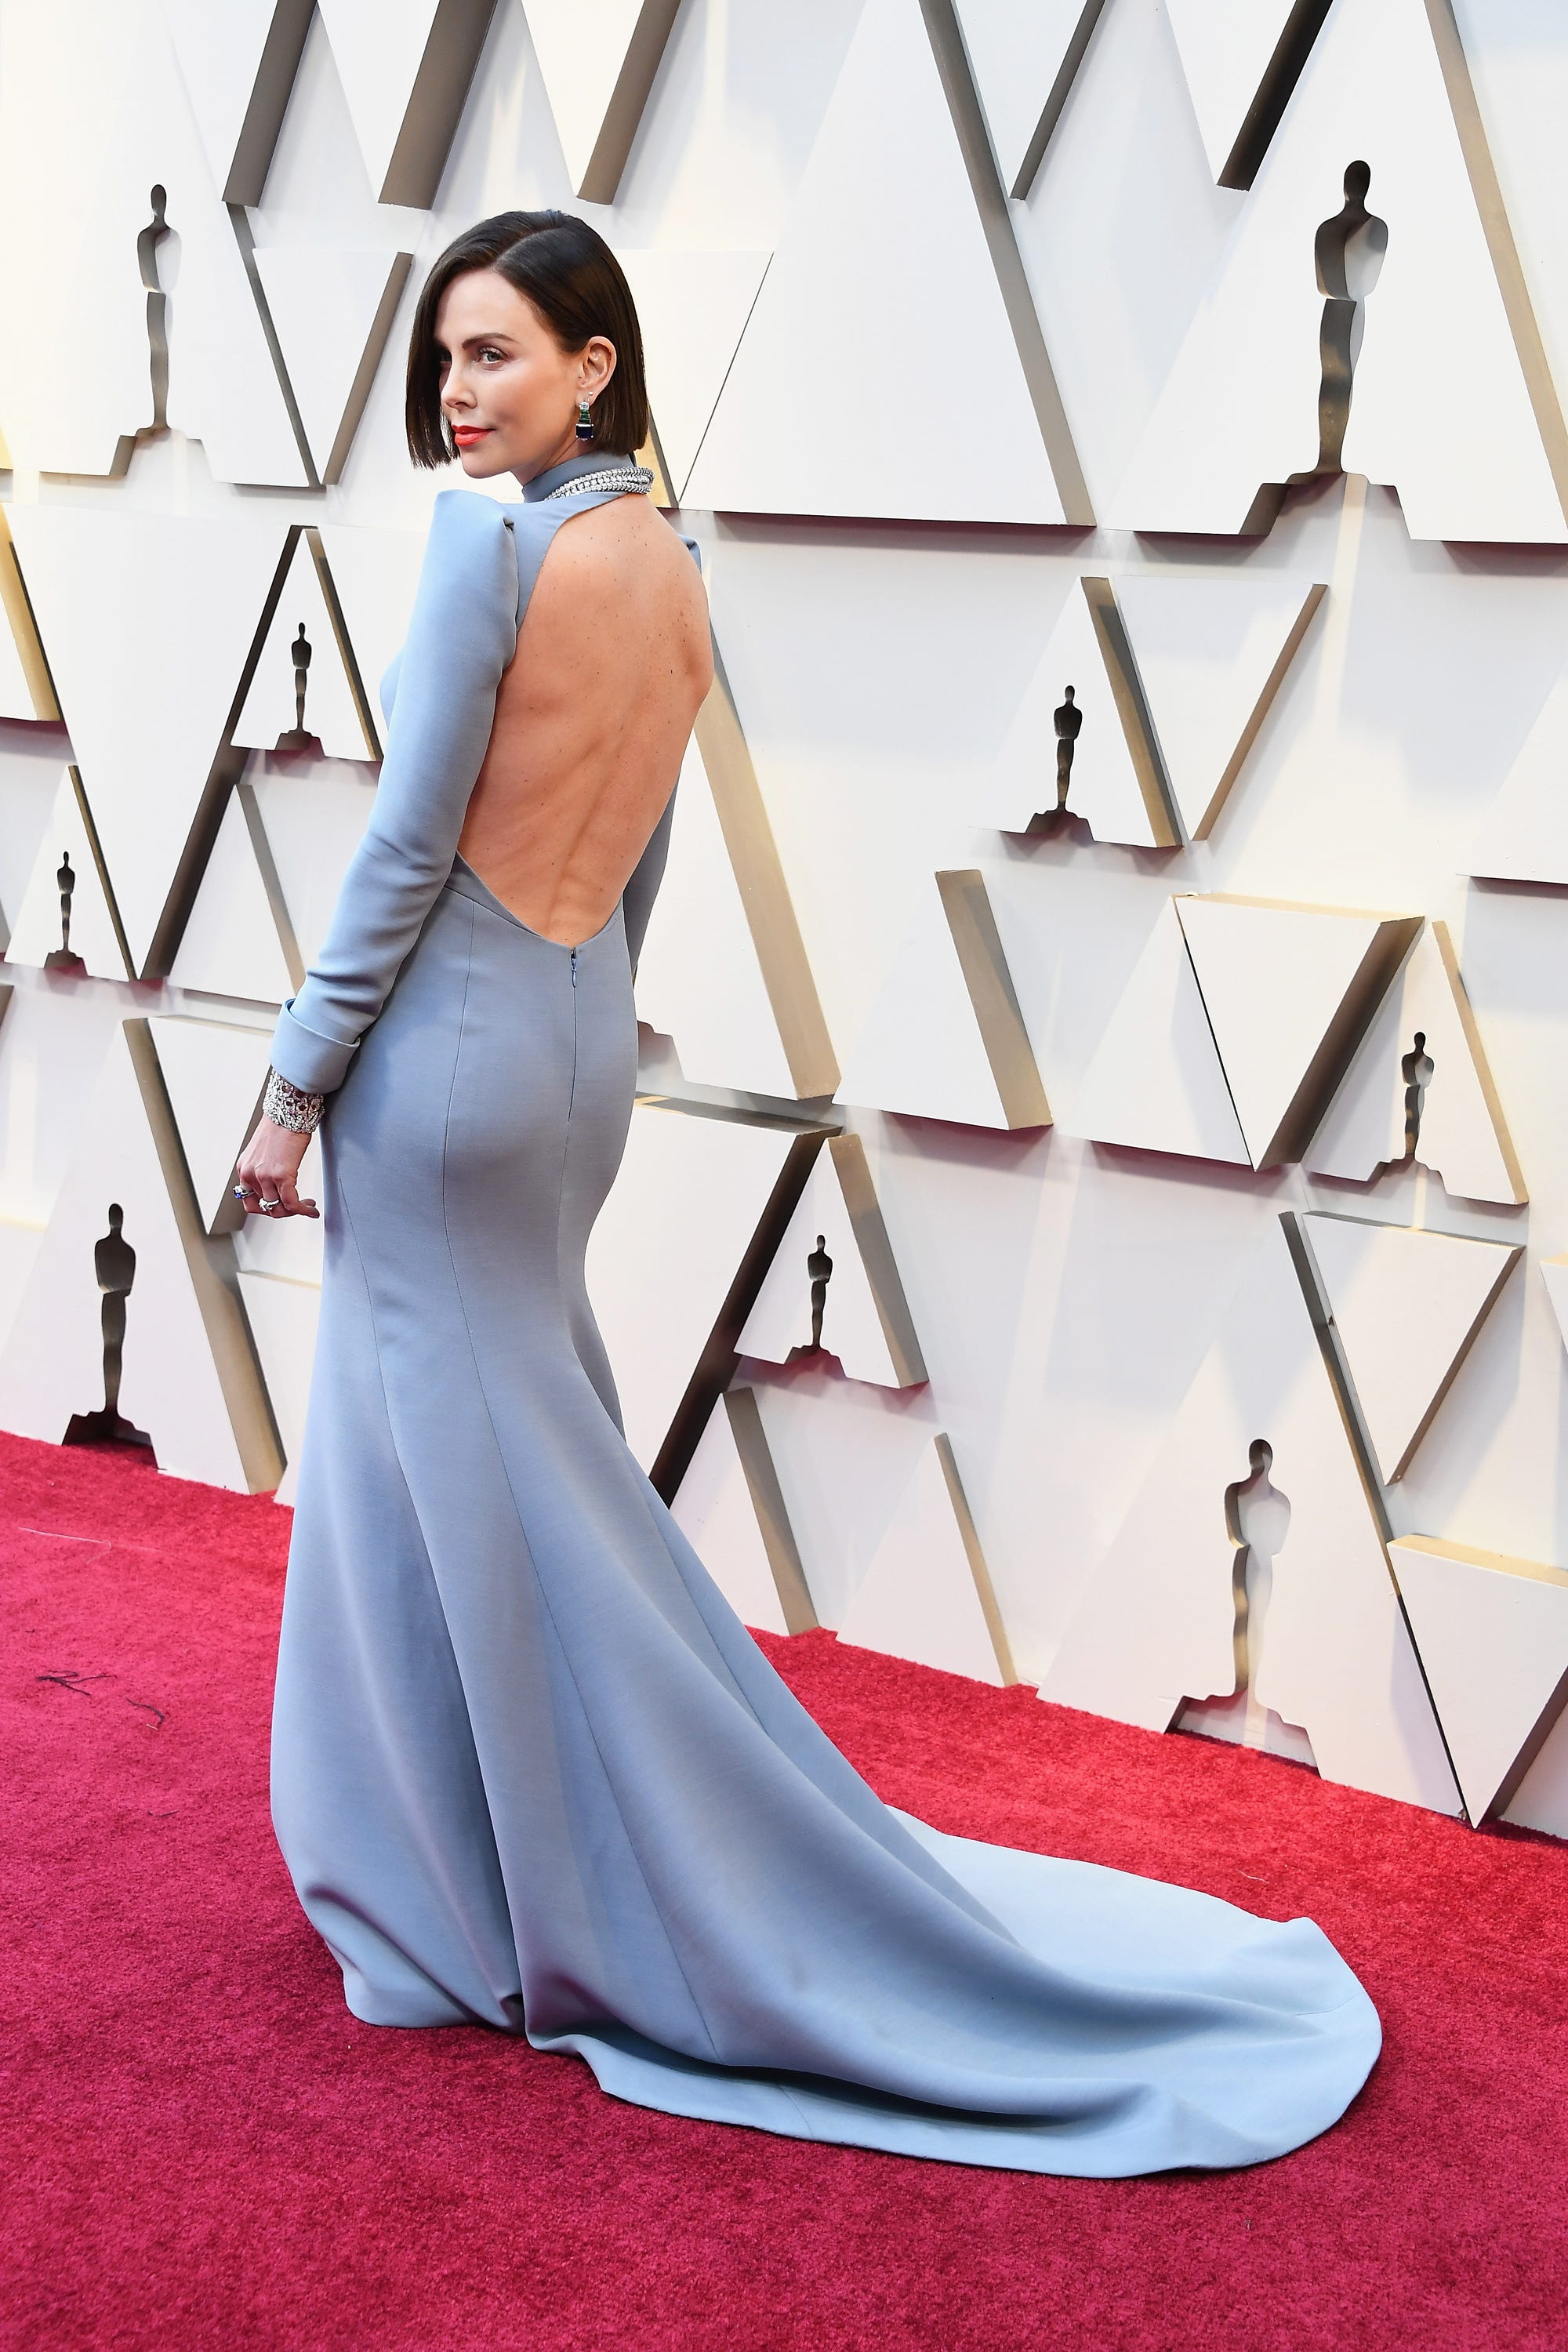 69b026284e Charlize Theron Open Back Oscars Dress Is A Daring Look